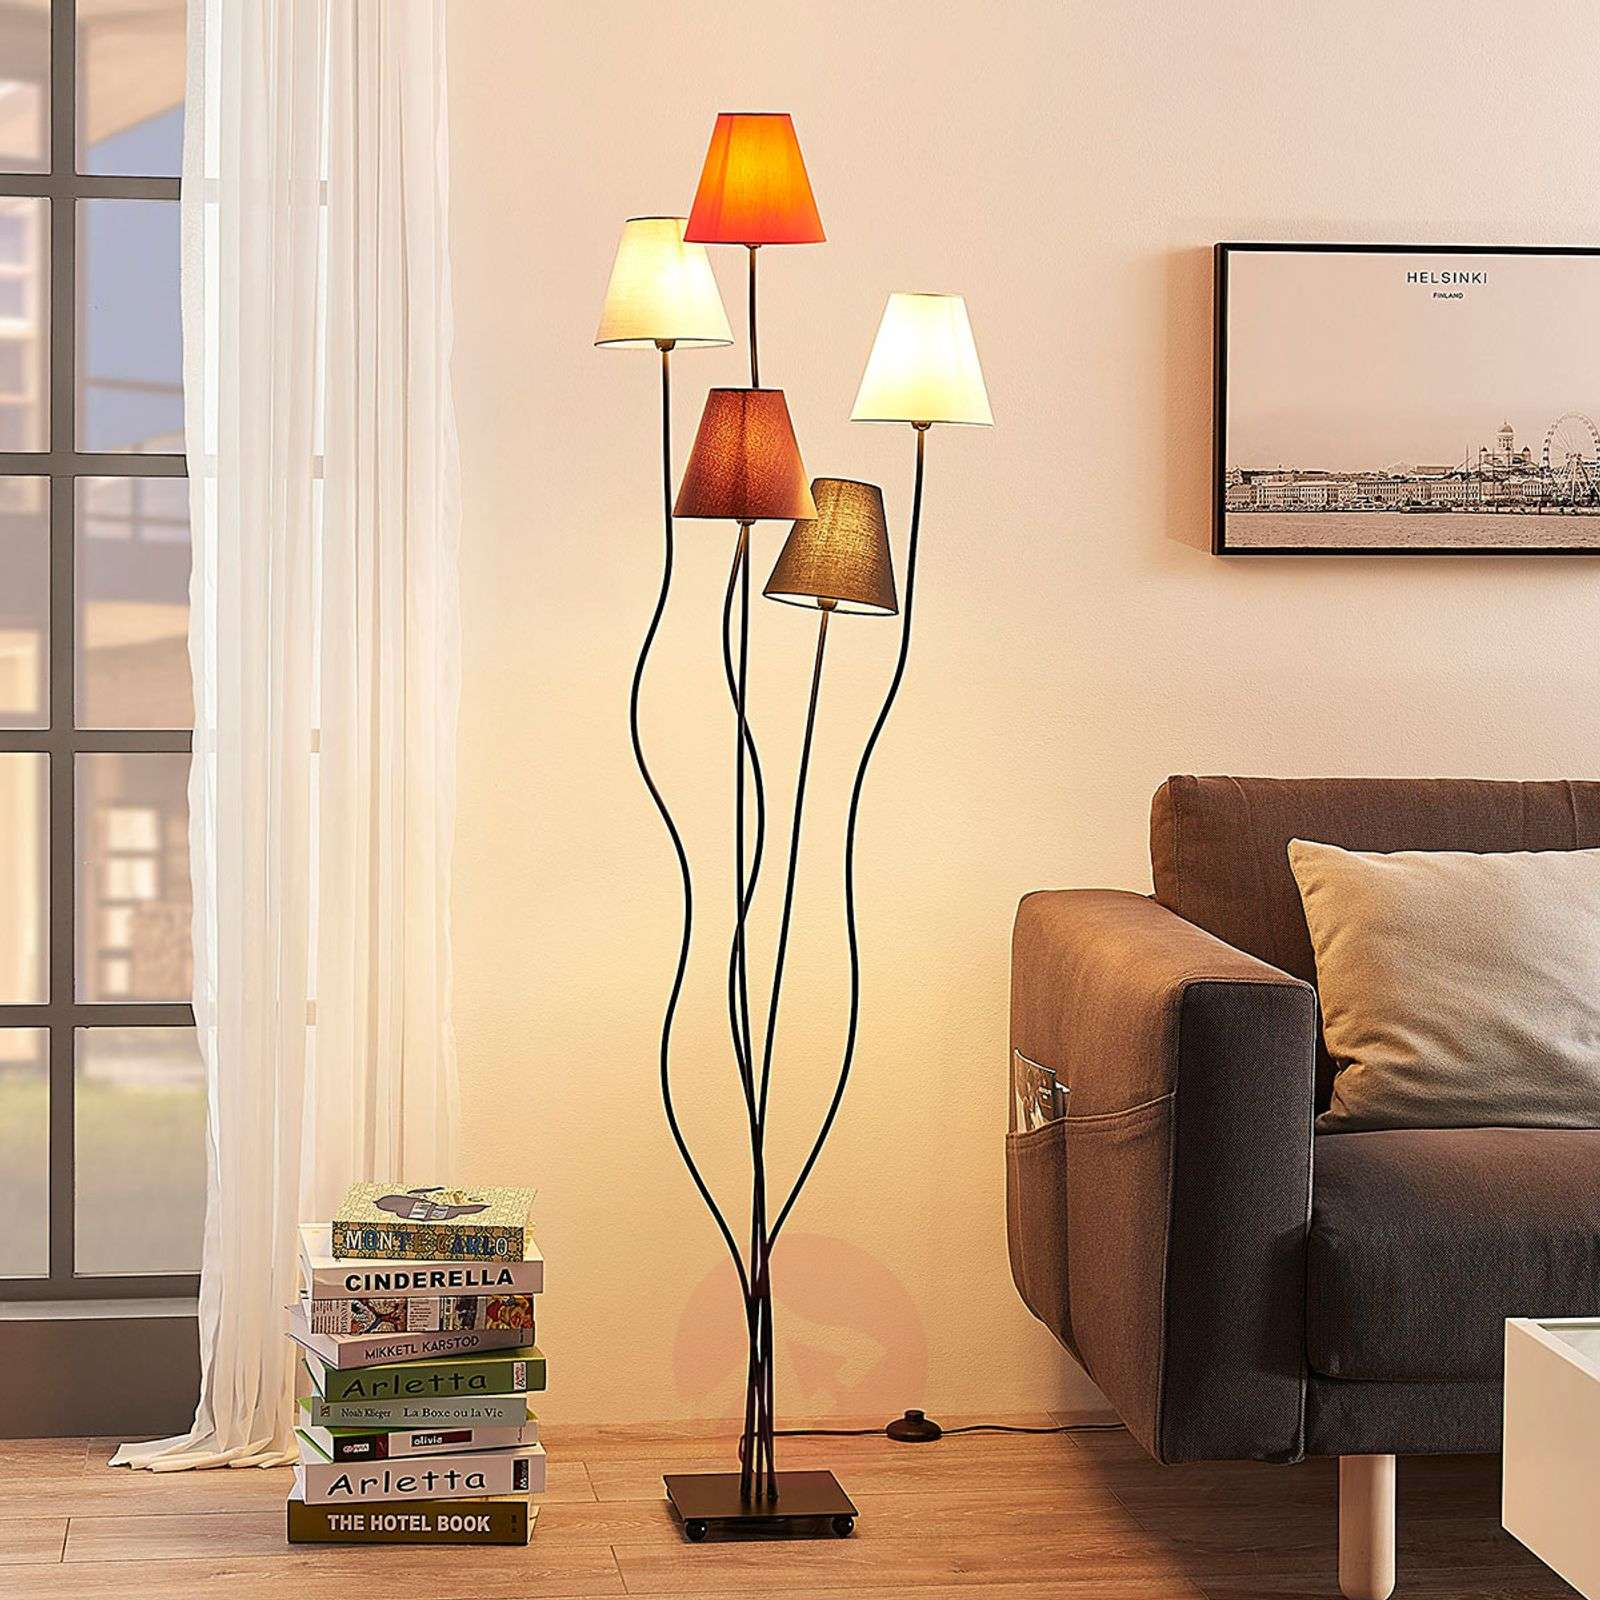 Melis five-bulb floor lamp for the living room